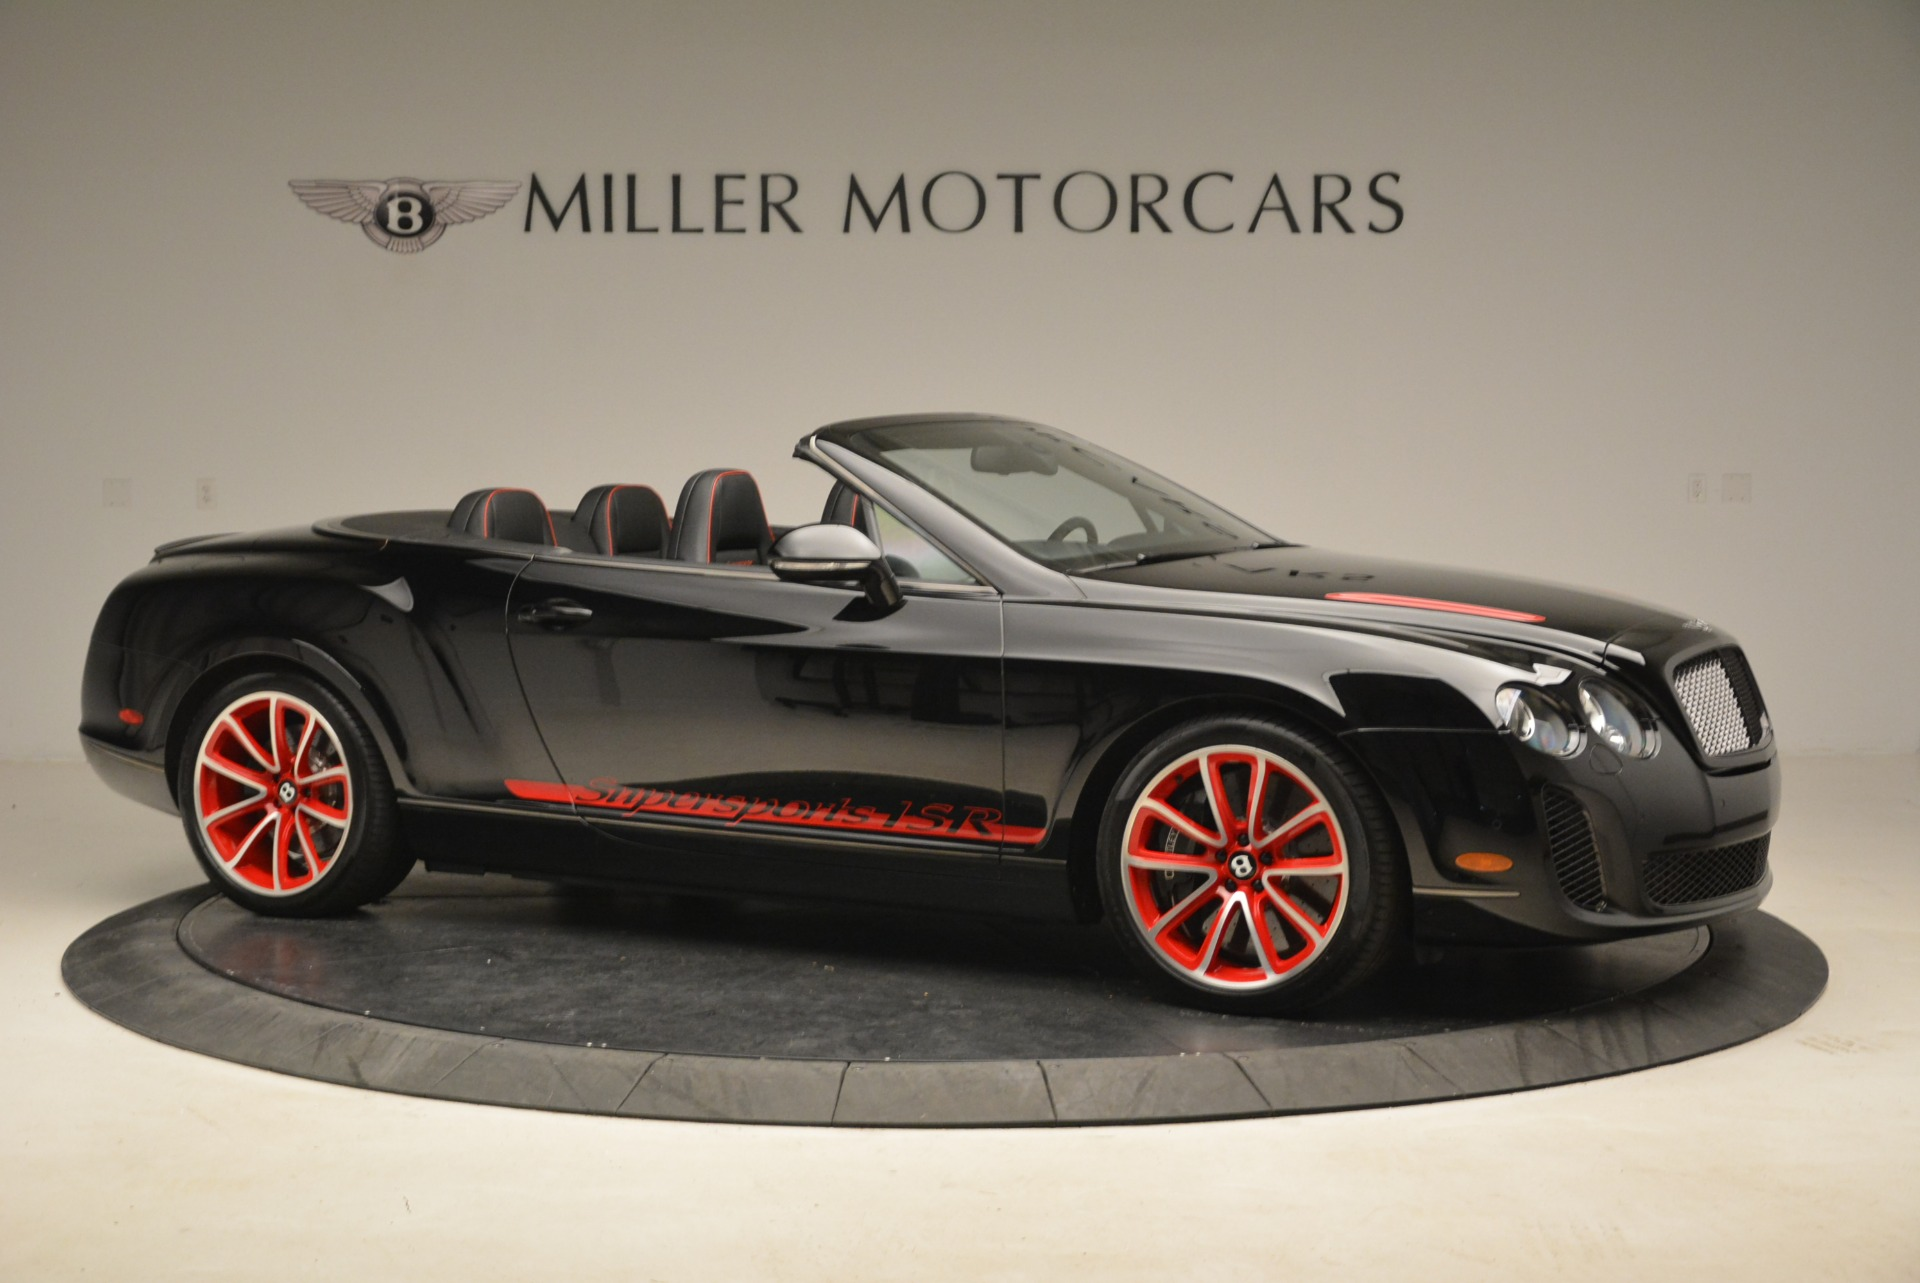 Used 2013 Bentley Continental GT Supersports Convertible ISR For Sale In Greenwich, CT. Alfa Romeo of Greenwich, 7340 2151_p10